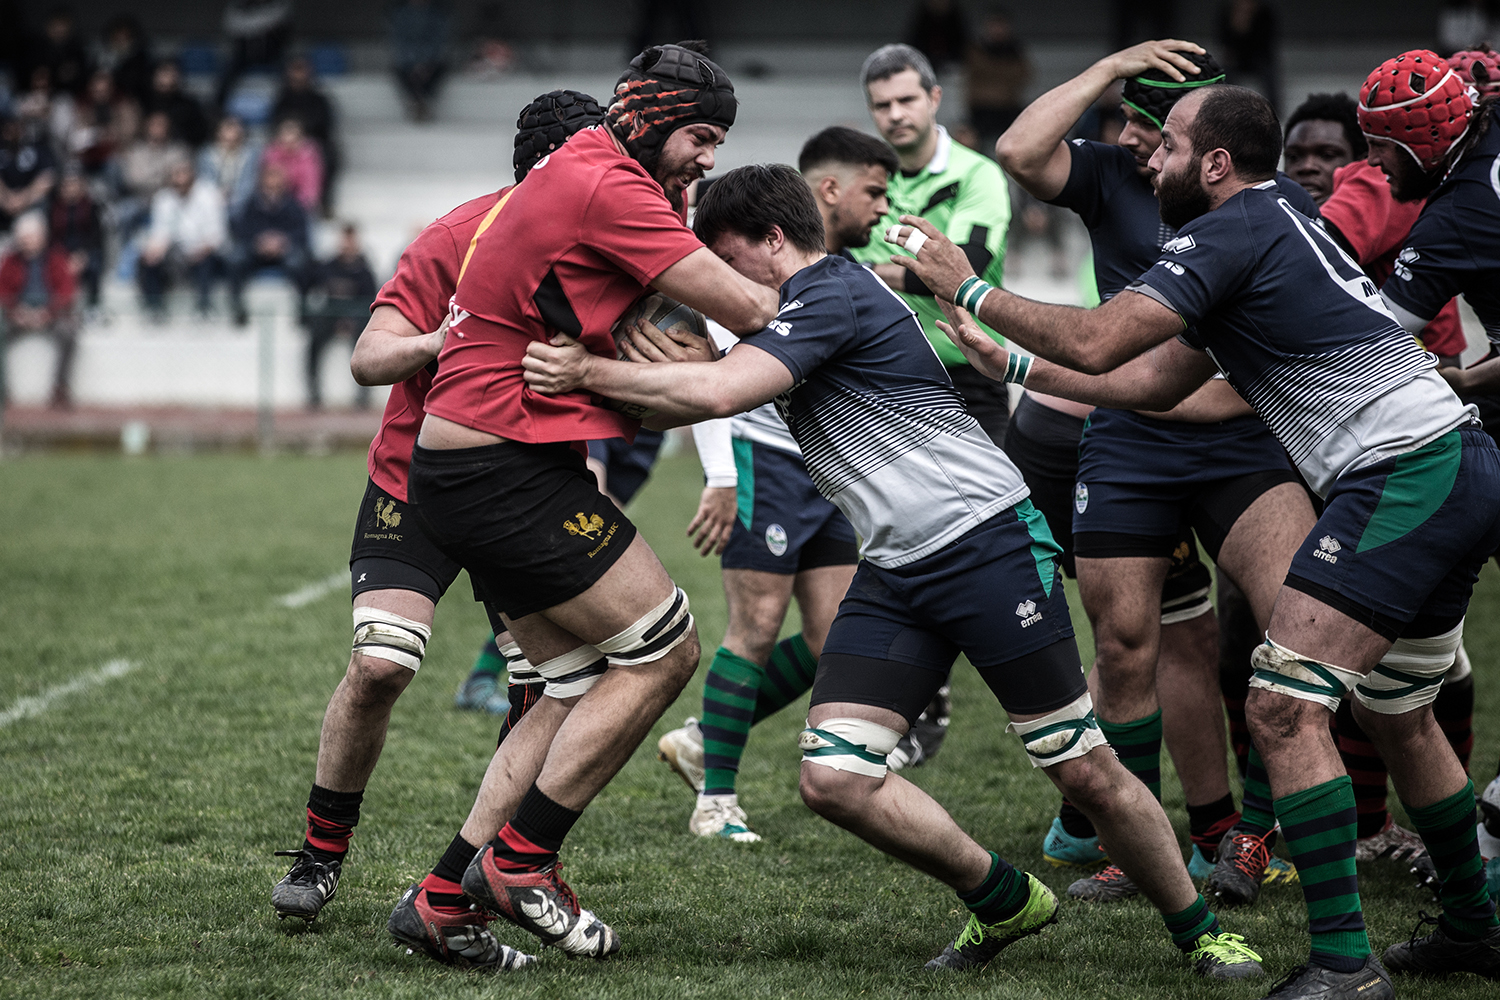 rugby_photograph_11.jpg